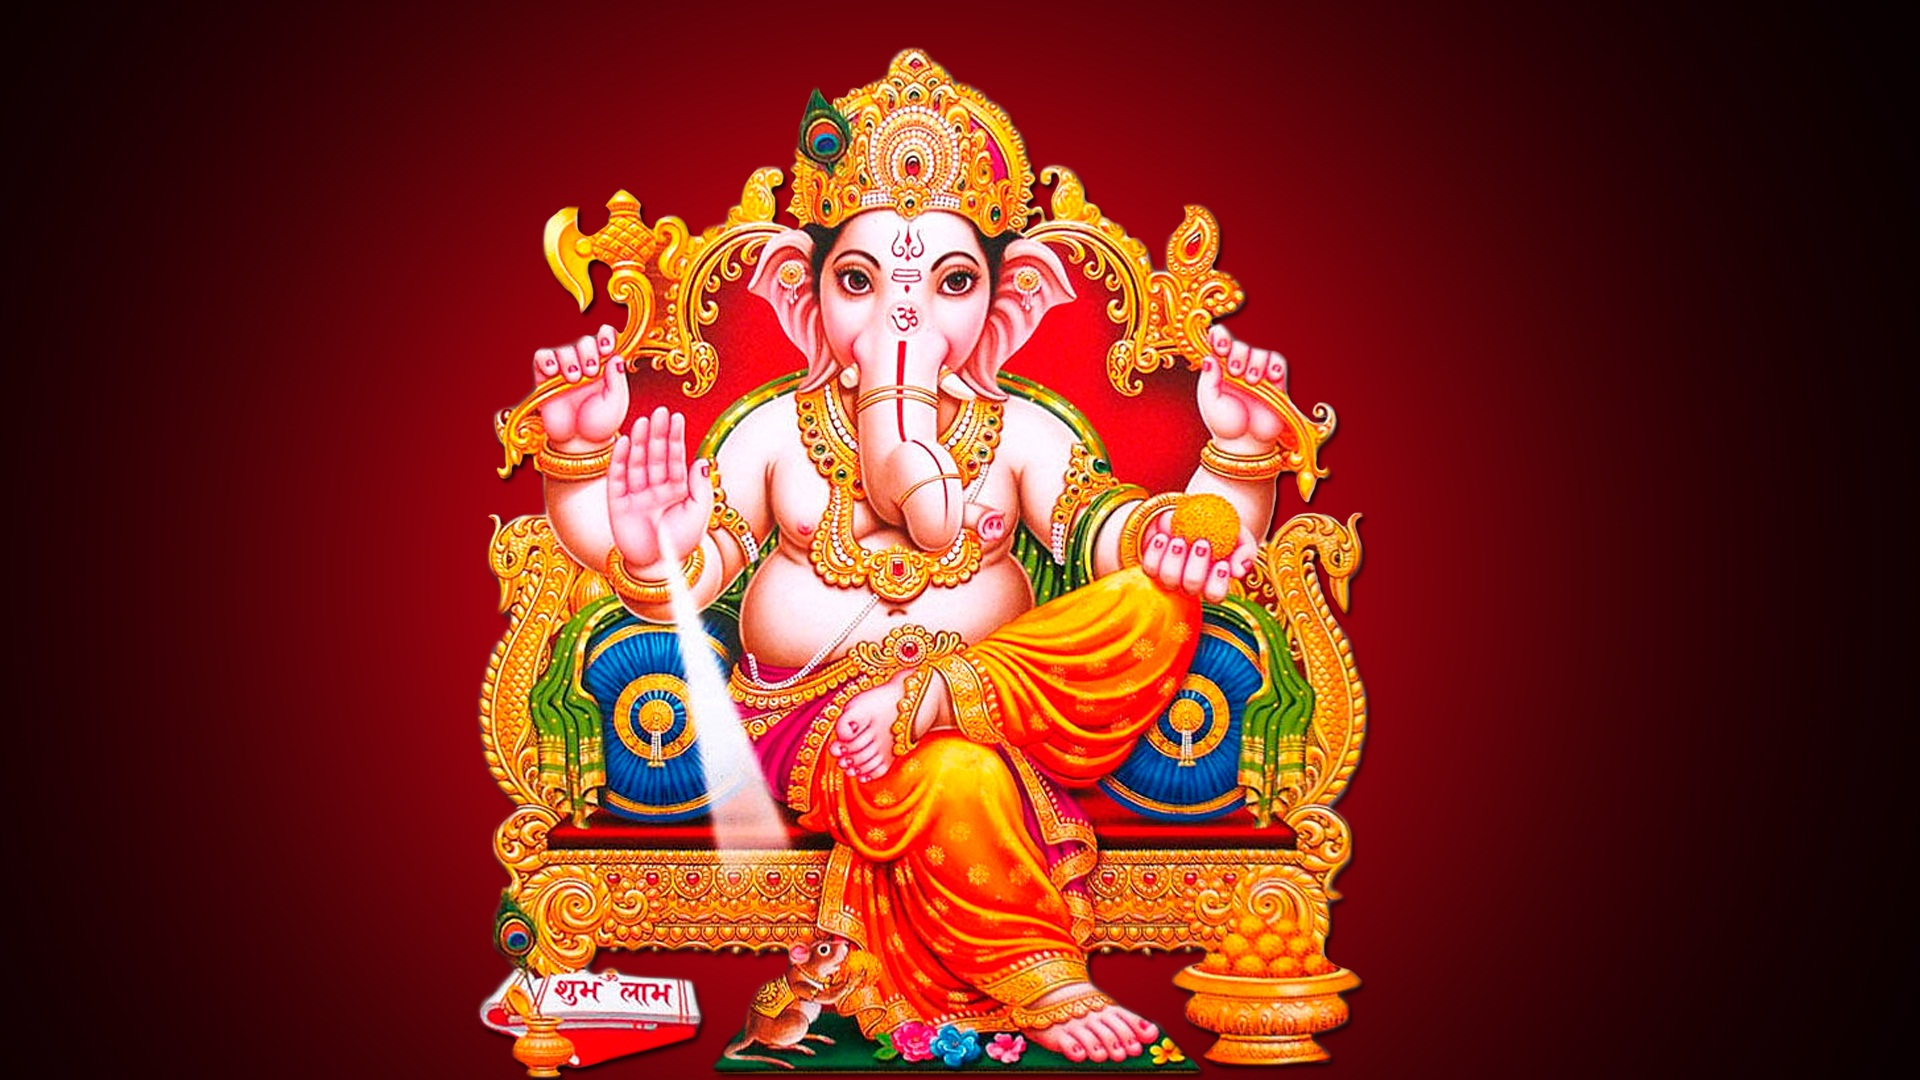 ganesh images, lord ganesh photos, pics & hd wallpapers download